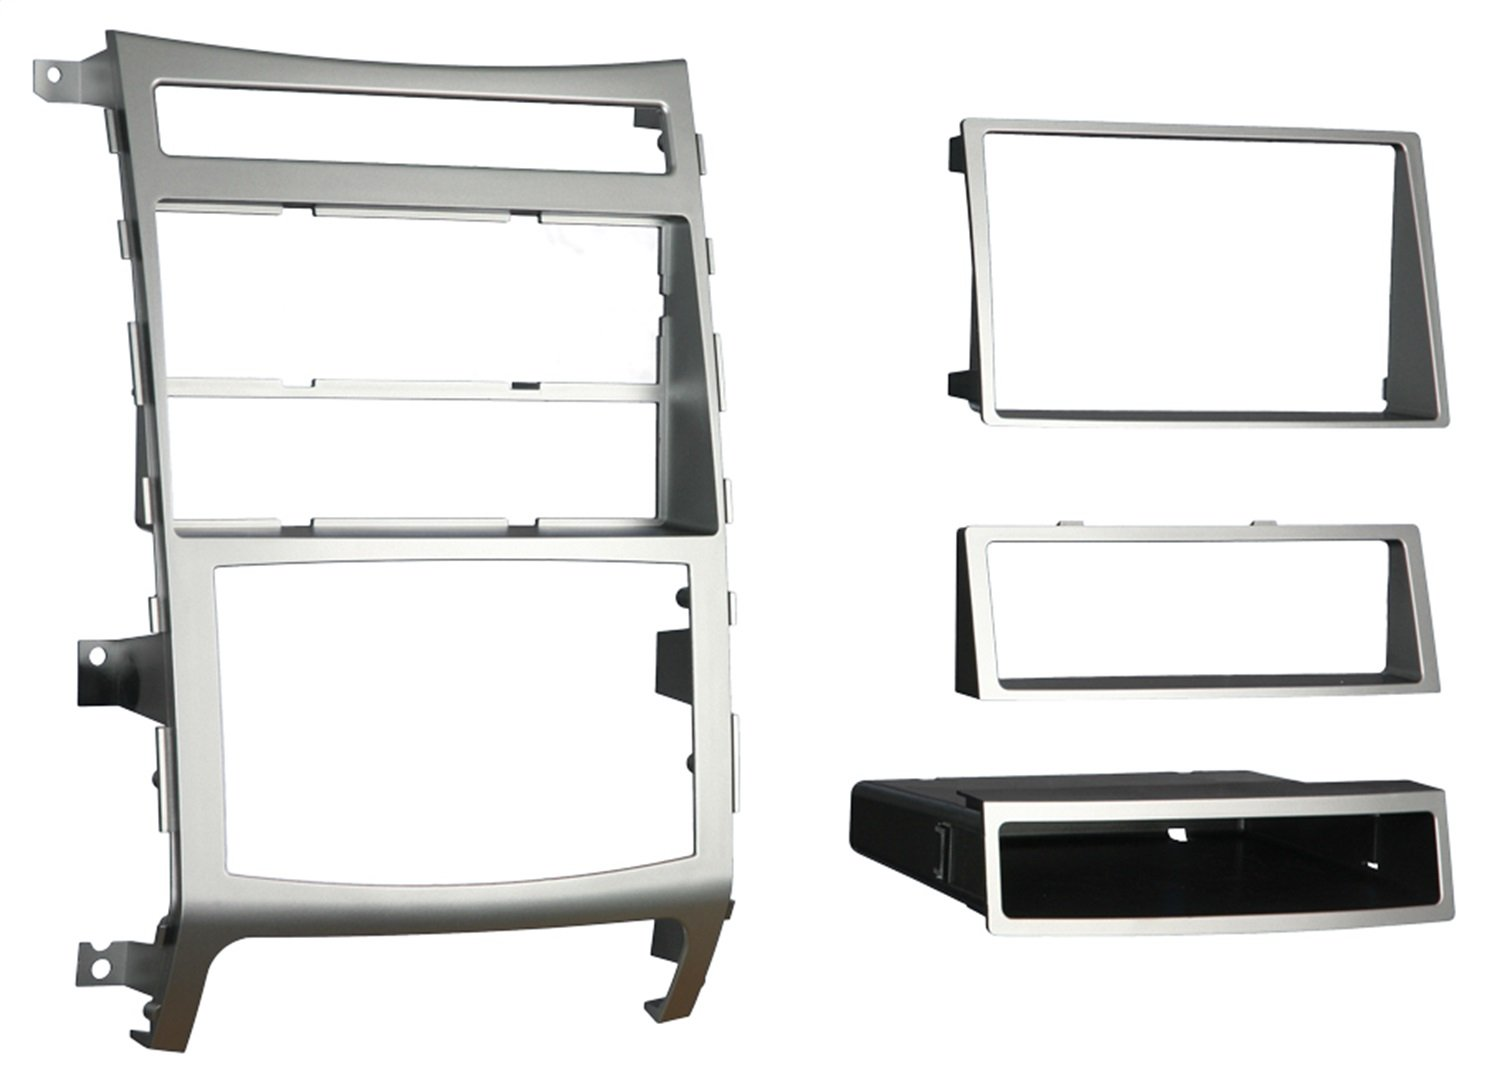 Metra 99-7335S Single or Double DIN Installation Dash Kit for 2007-2009 Hyundai Veracruz with Automatic Climate Control Only (Silver) Metra Electronics Corporation